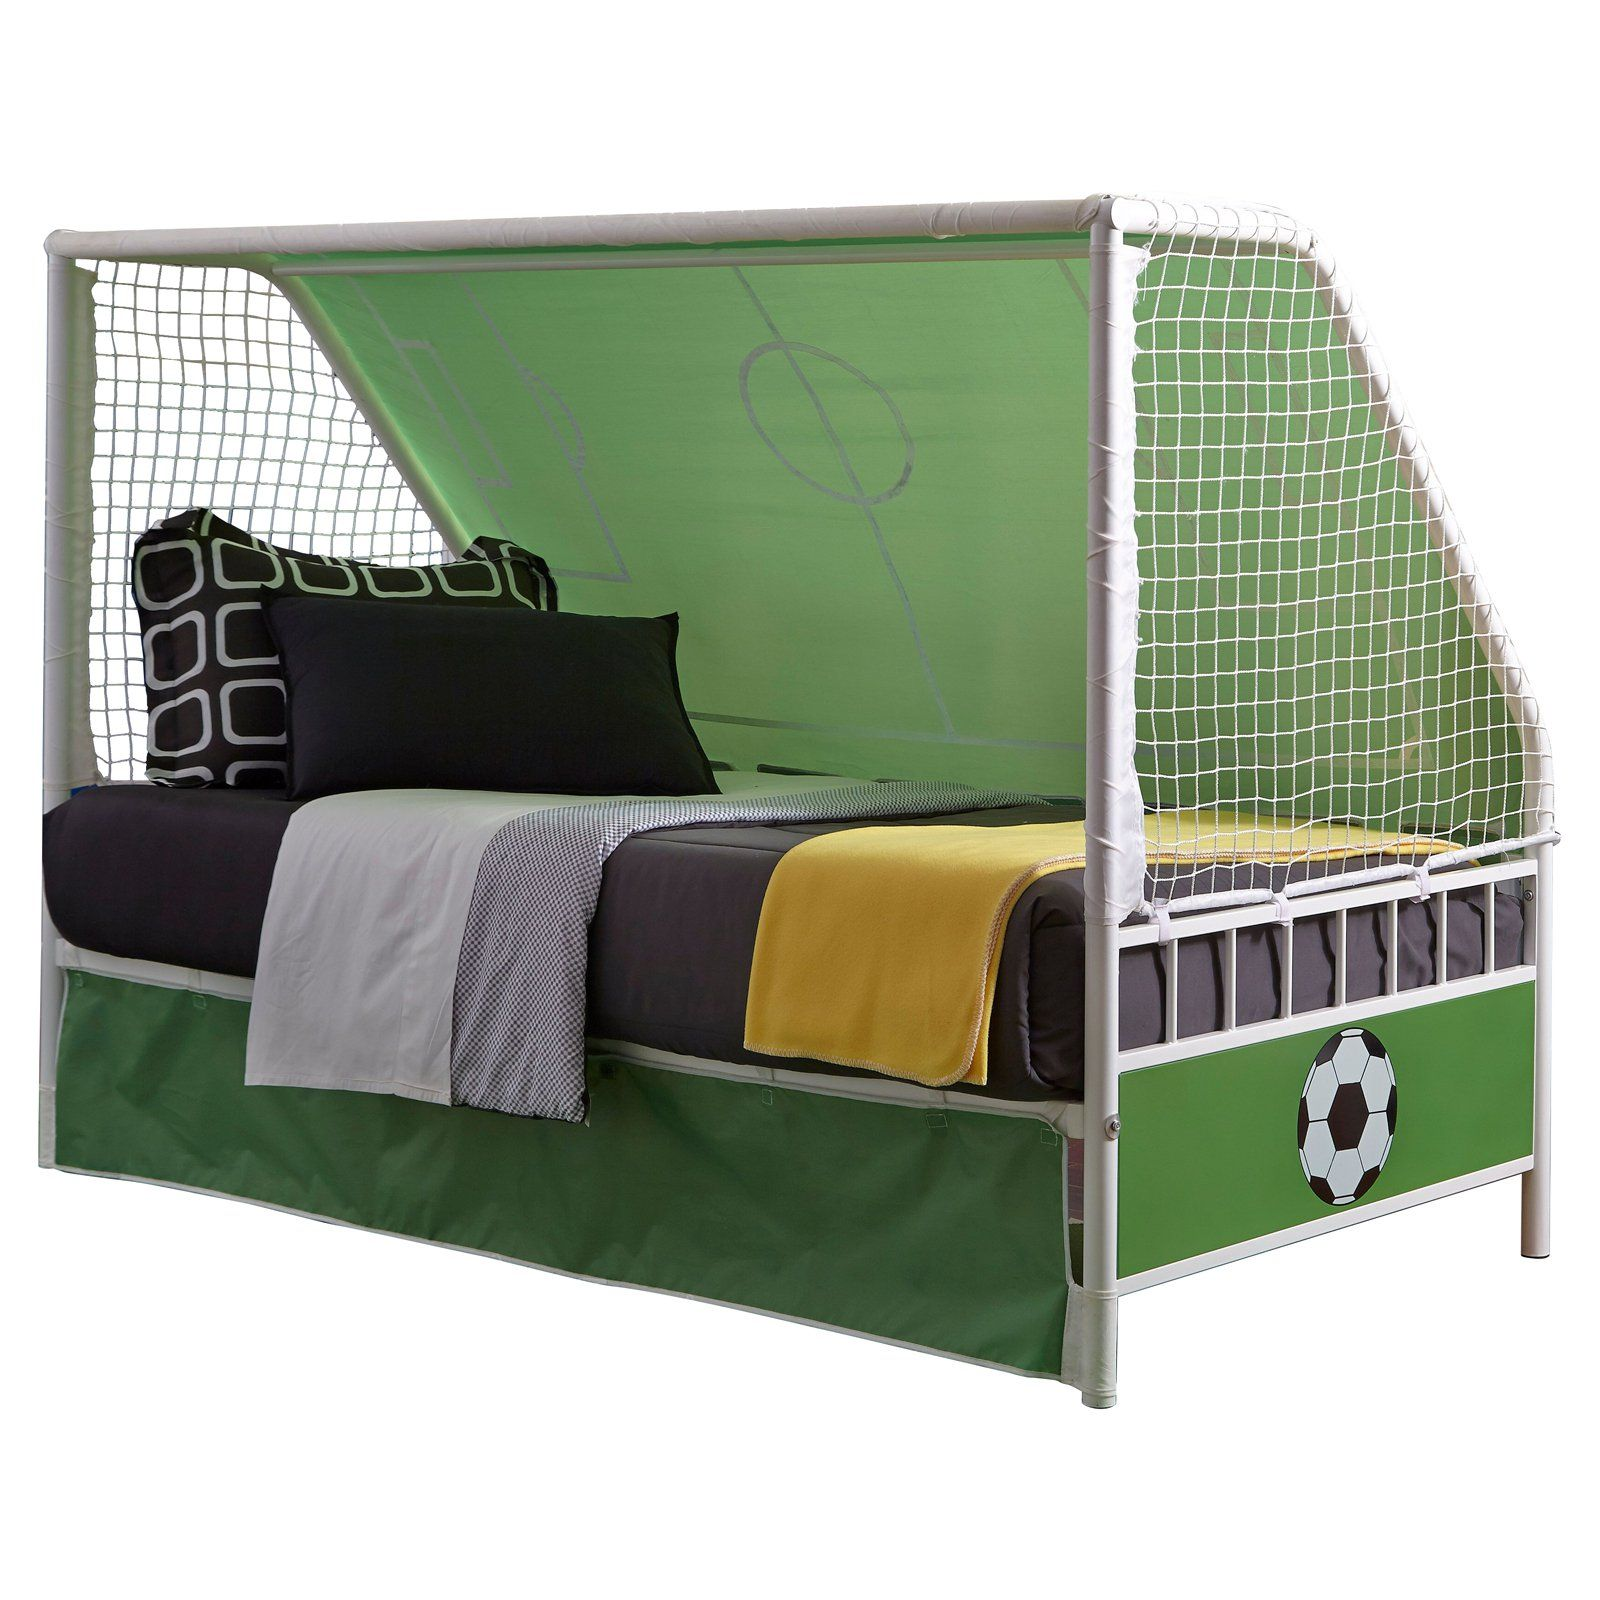 Powell Goal Keeper Daybed Products In 2019 Day Bed Frame